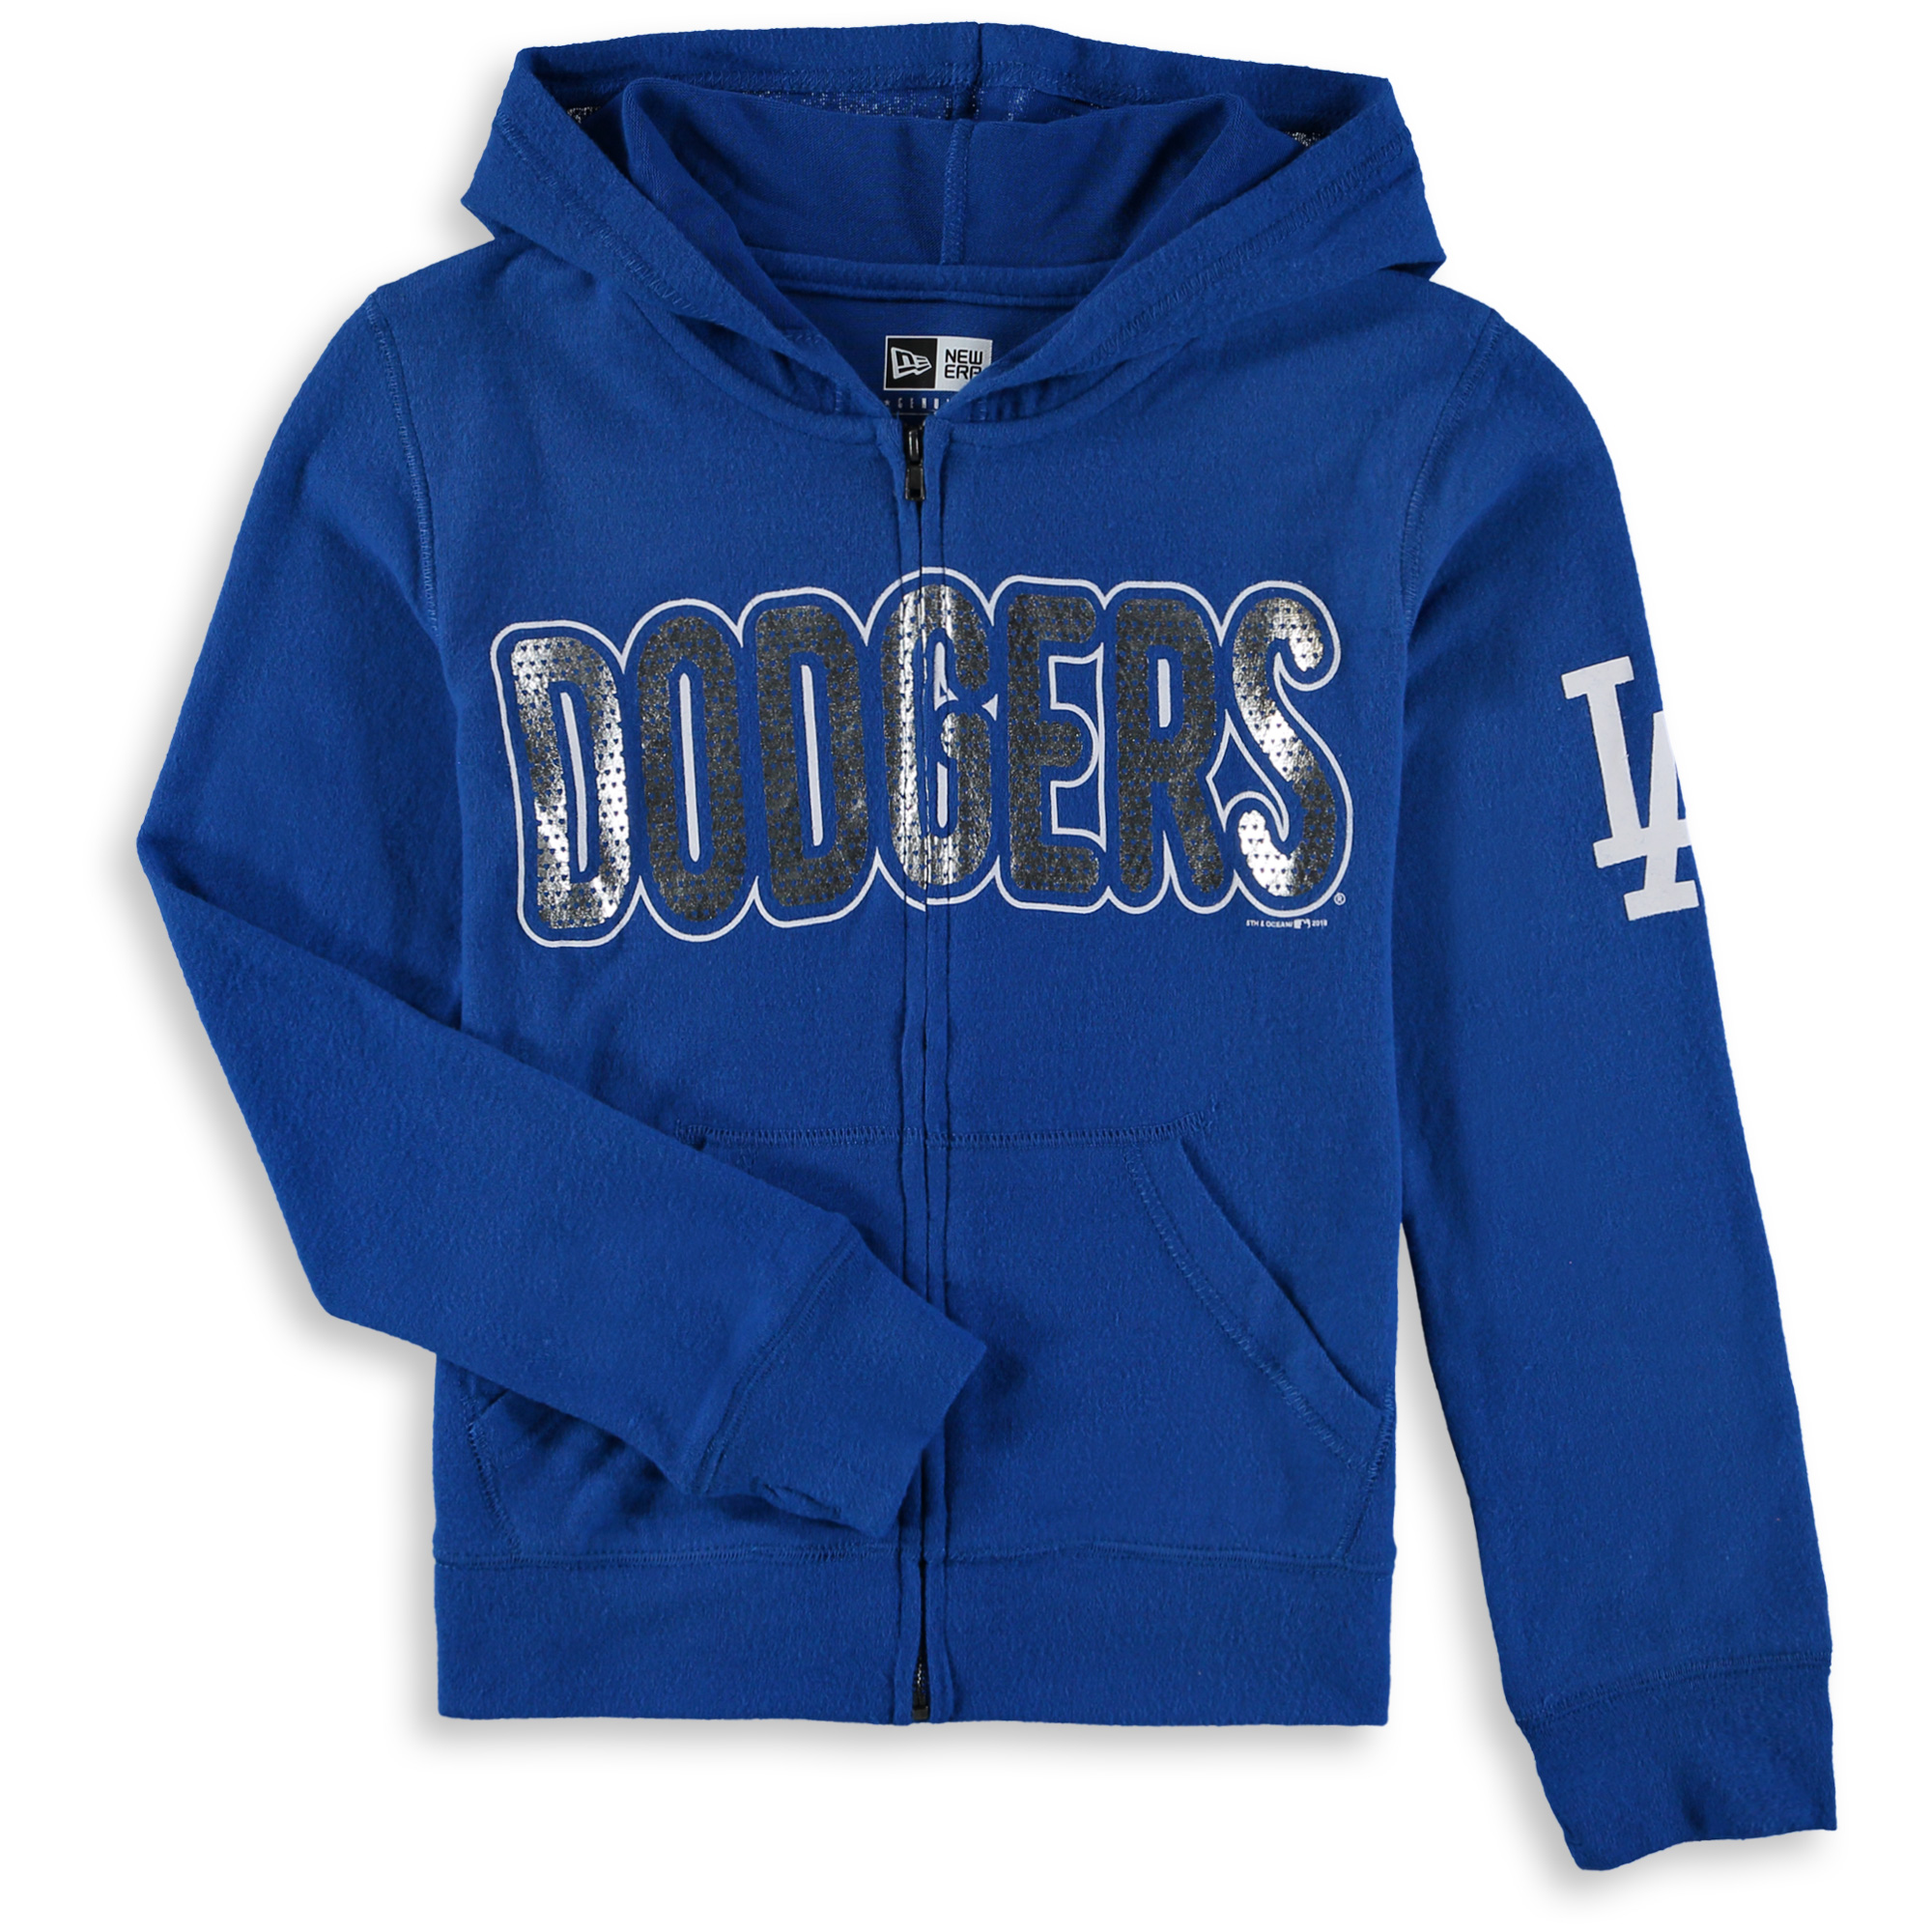 Los Angeles Dodgers 5th & Ocean by New Era Girls Youth Brushed Sweater Knit Tri-Blend Full-Zip Hoodie - Royal